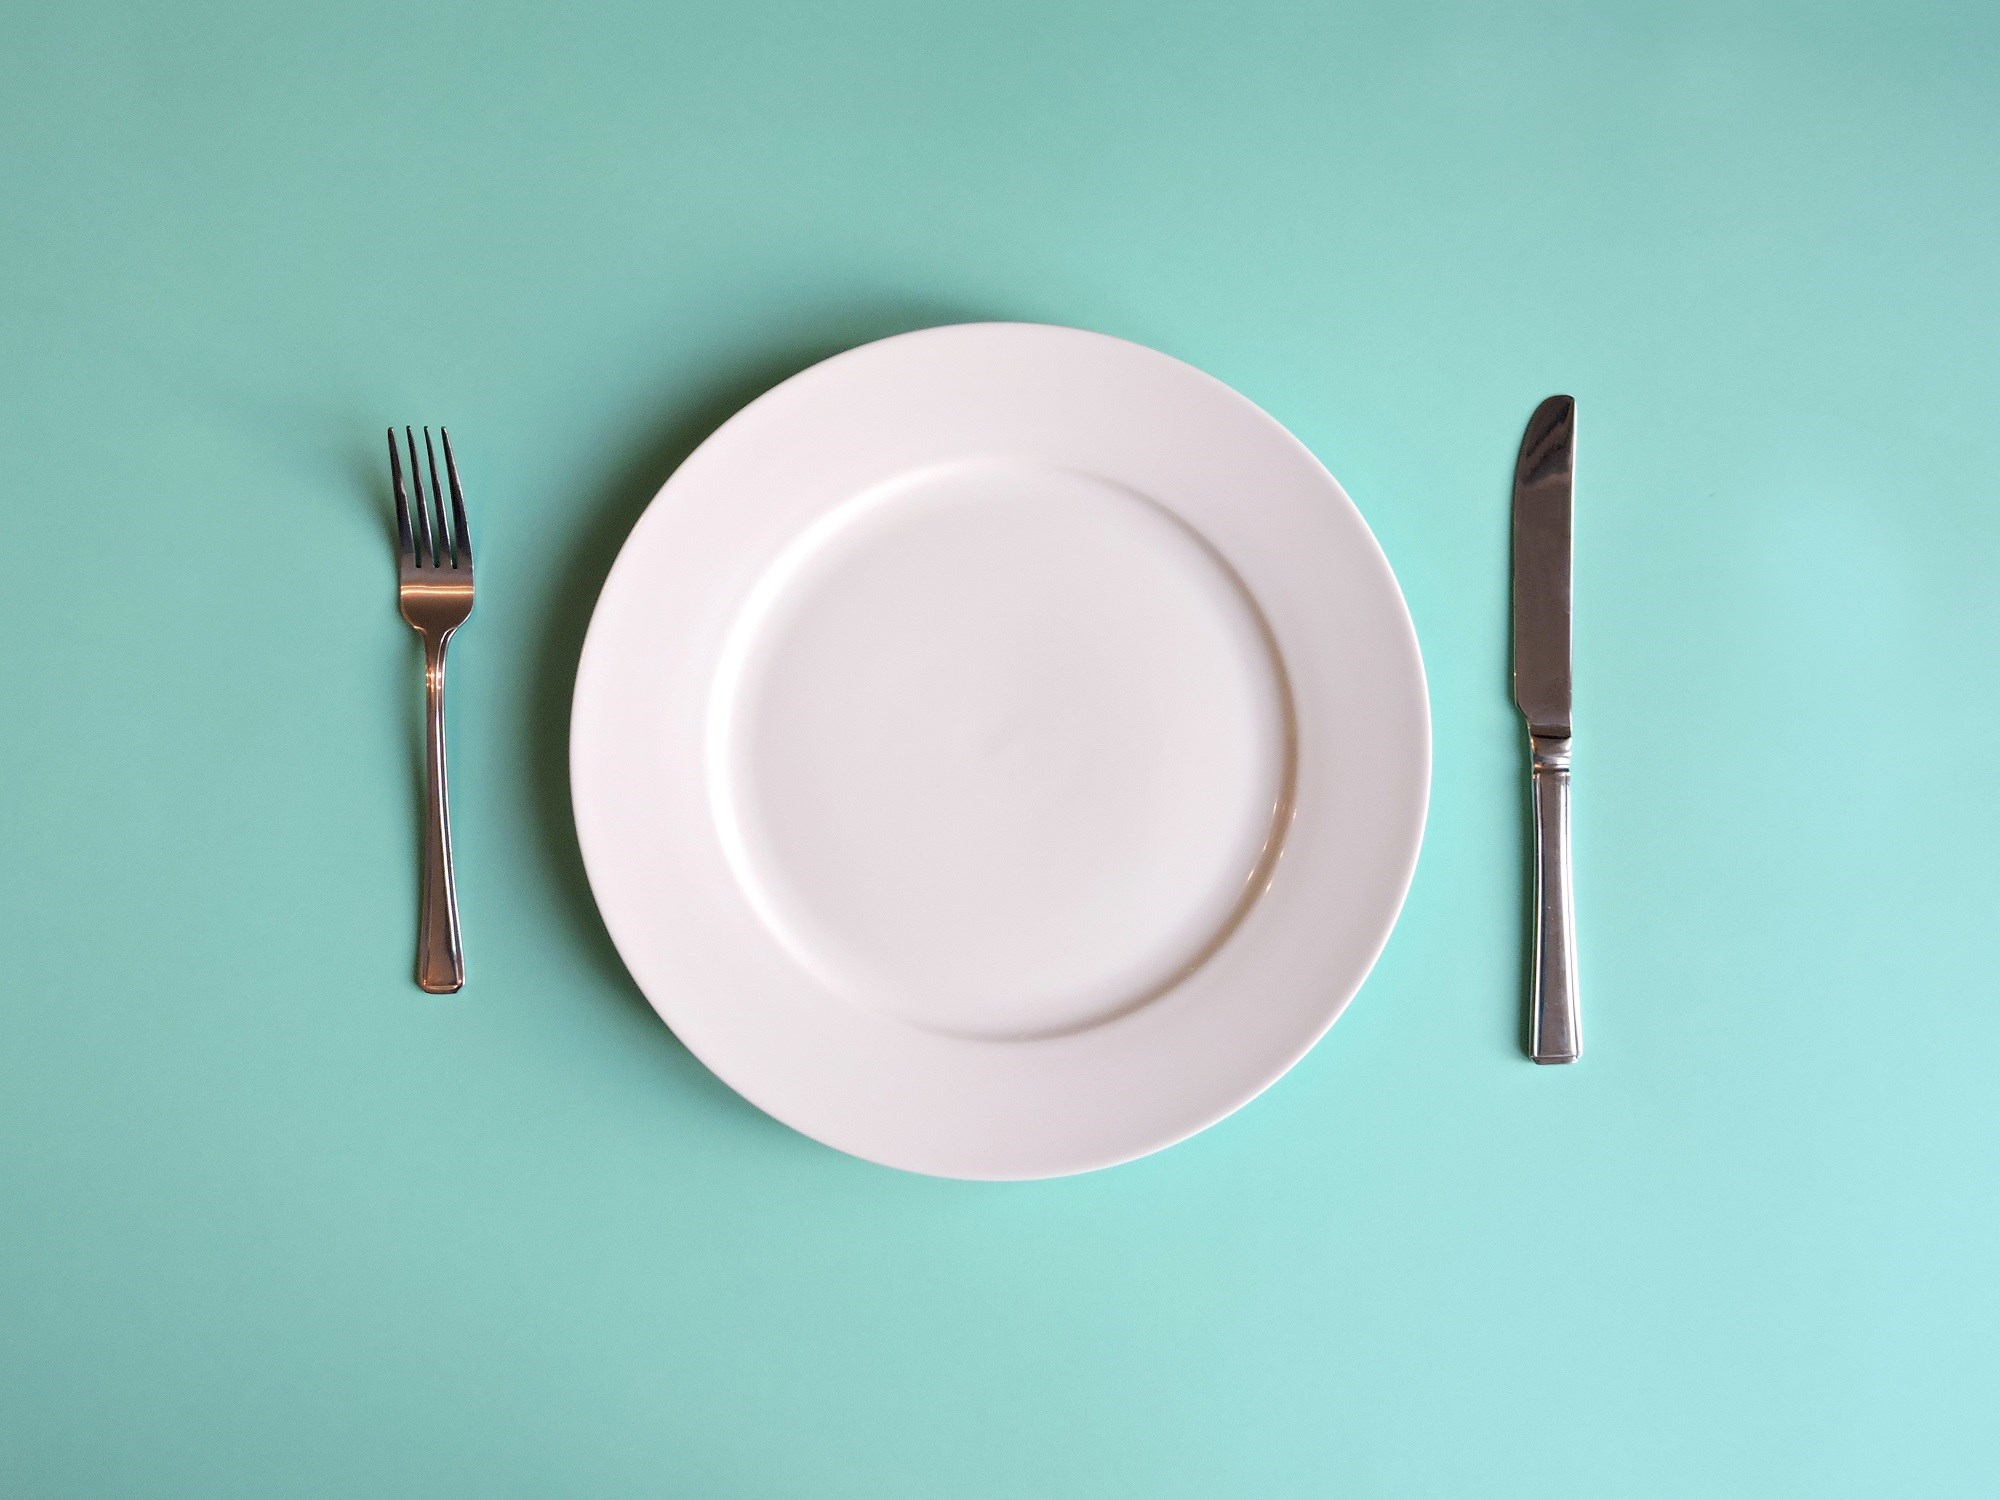 Medically supervised, therapeutic fasting regimens can help reverse type 2 diabetes (T2D) and minimize the need for pharmacological interventions.